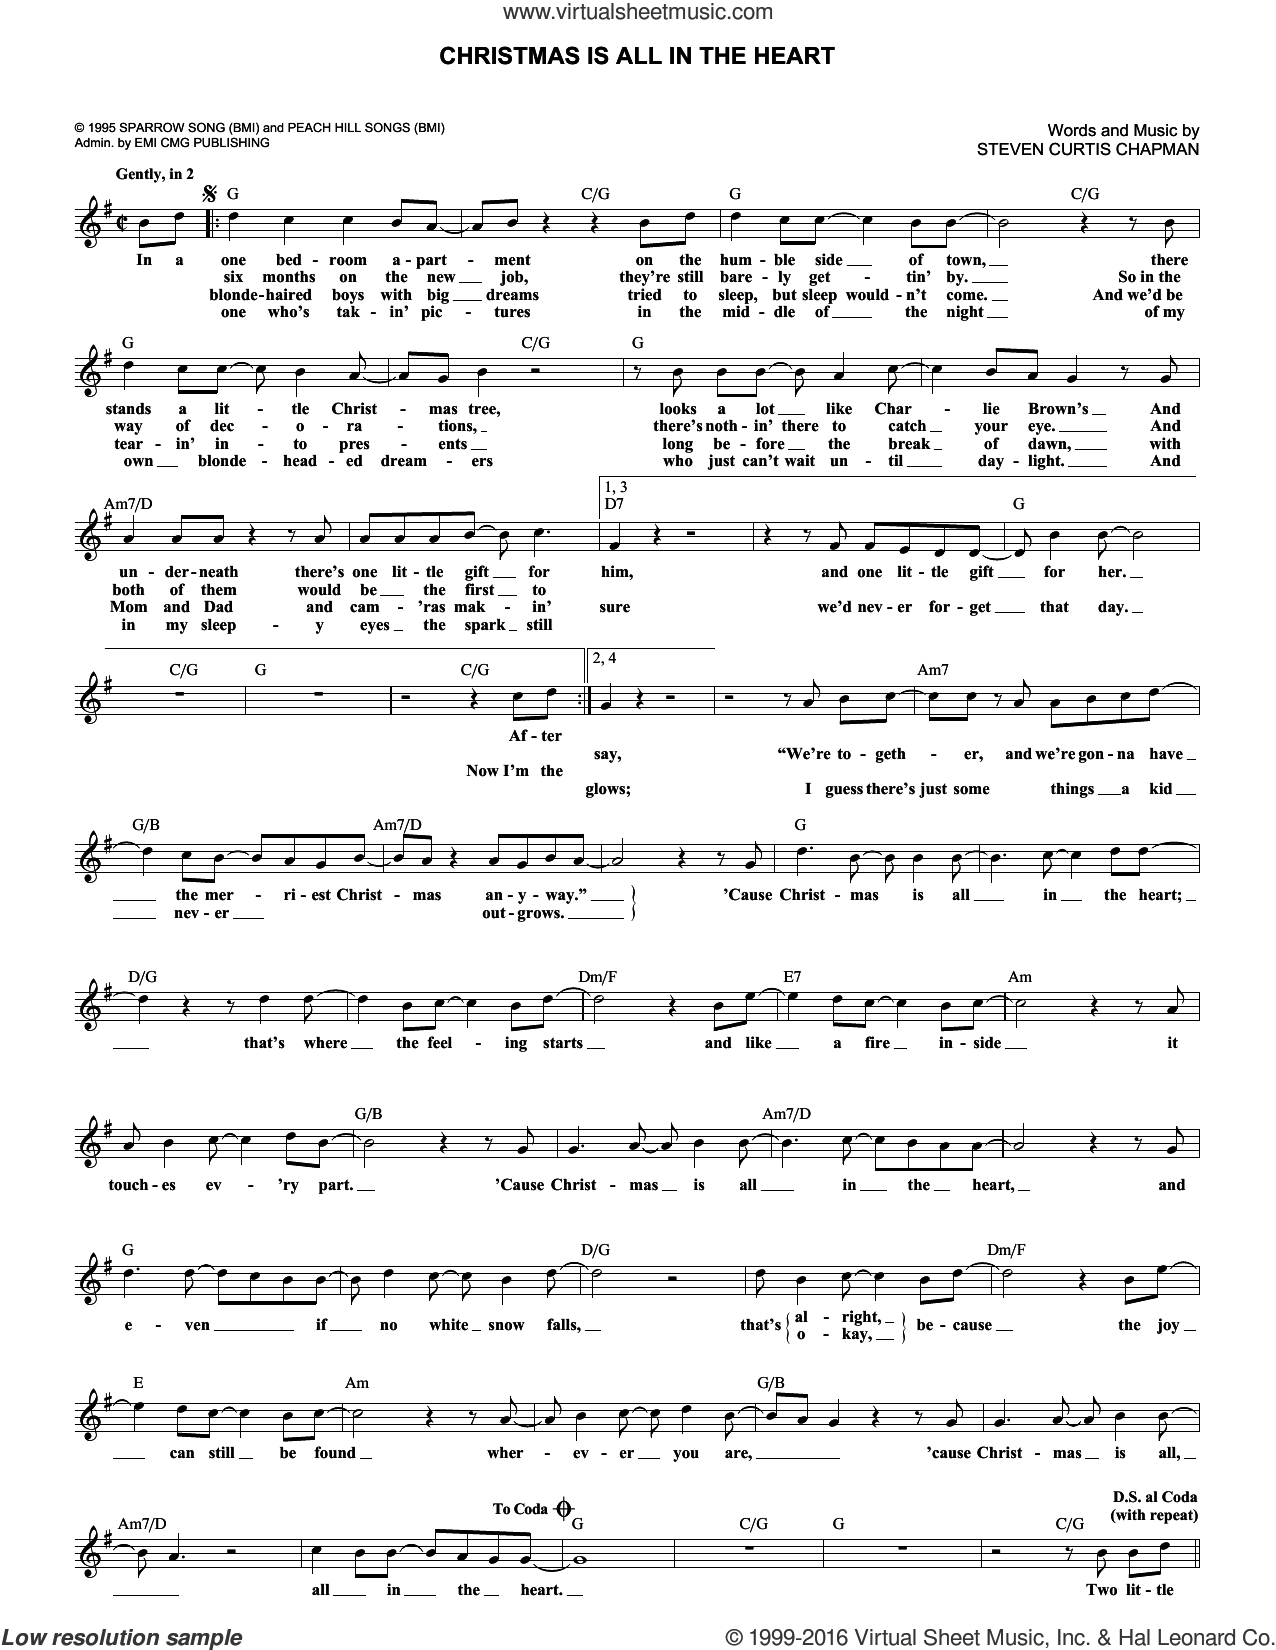 Christmas Is All In The Heart sheet music for voice and other instruments (fake book) by Steven Curtis Chapman, intermediate skill level